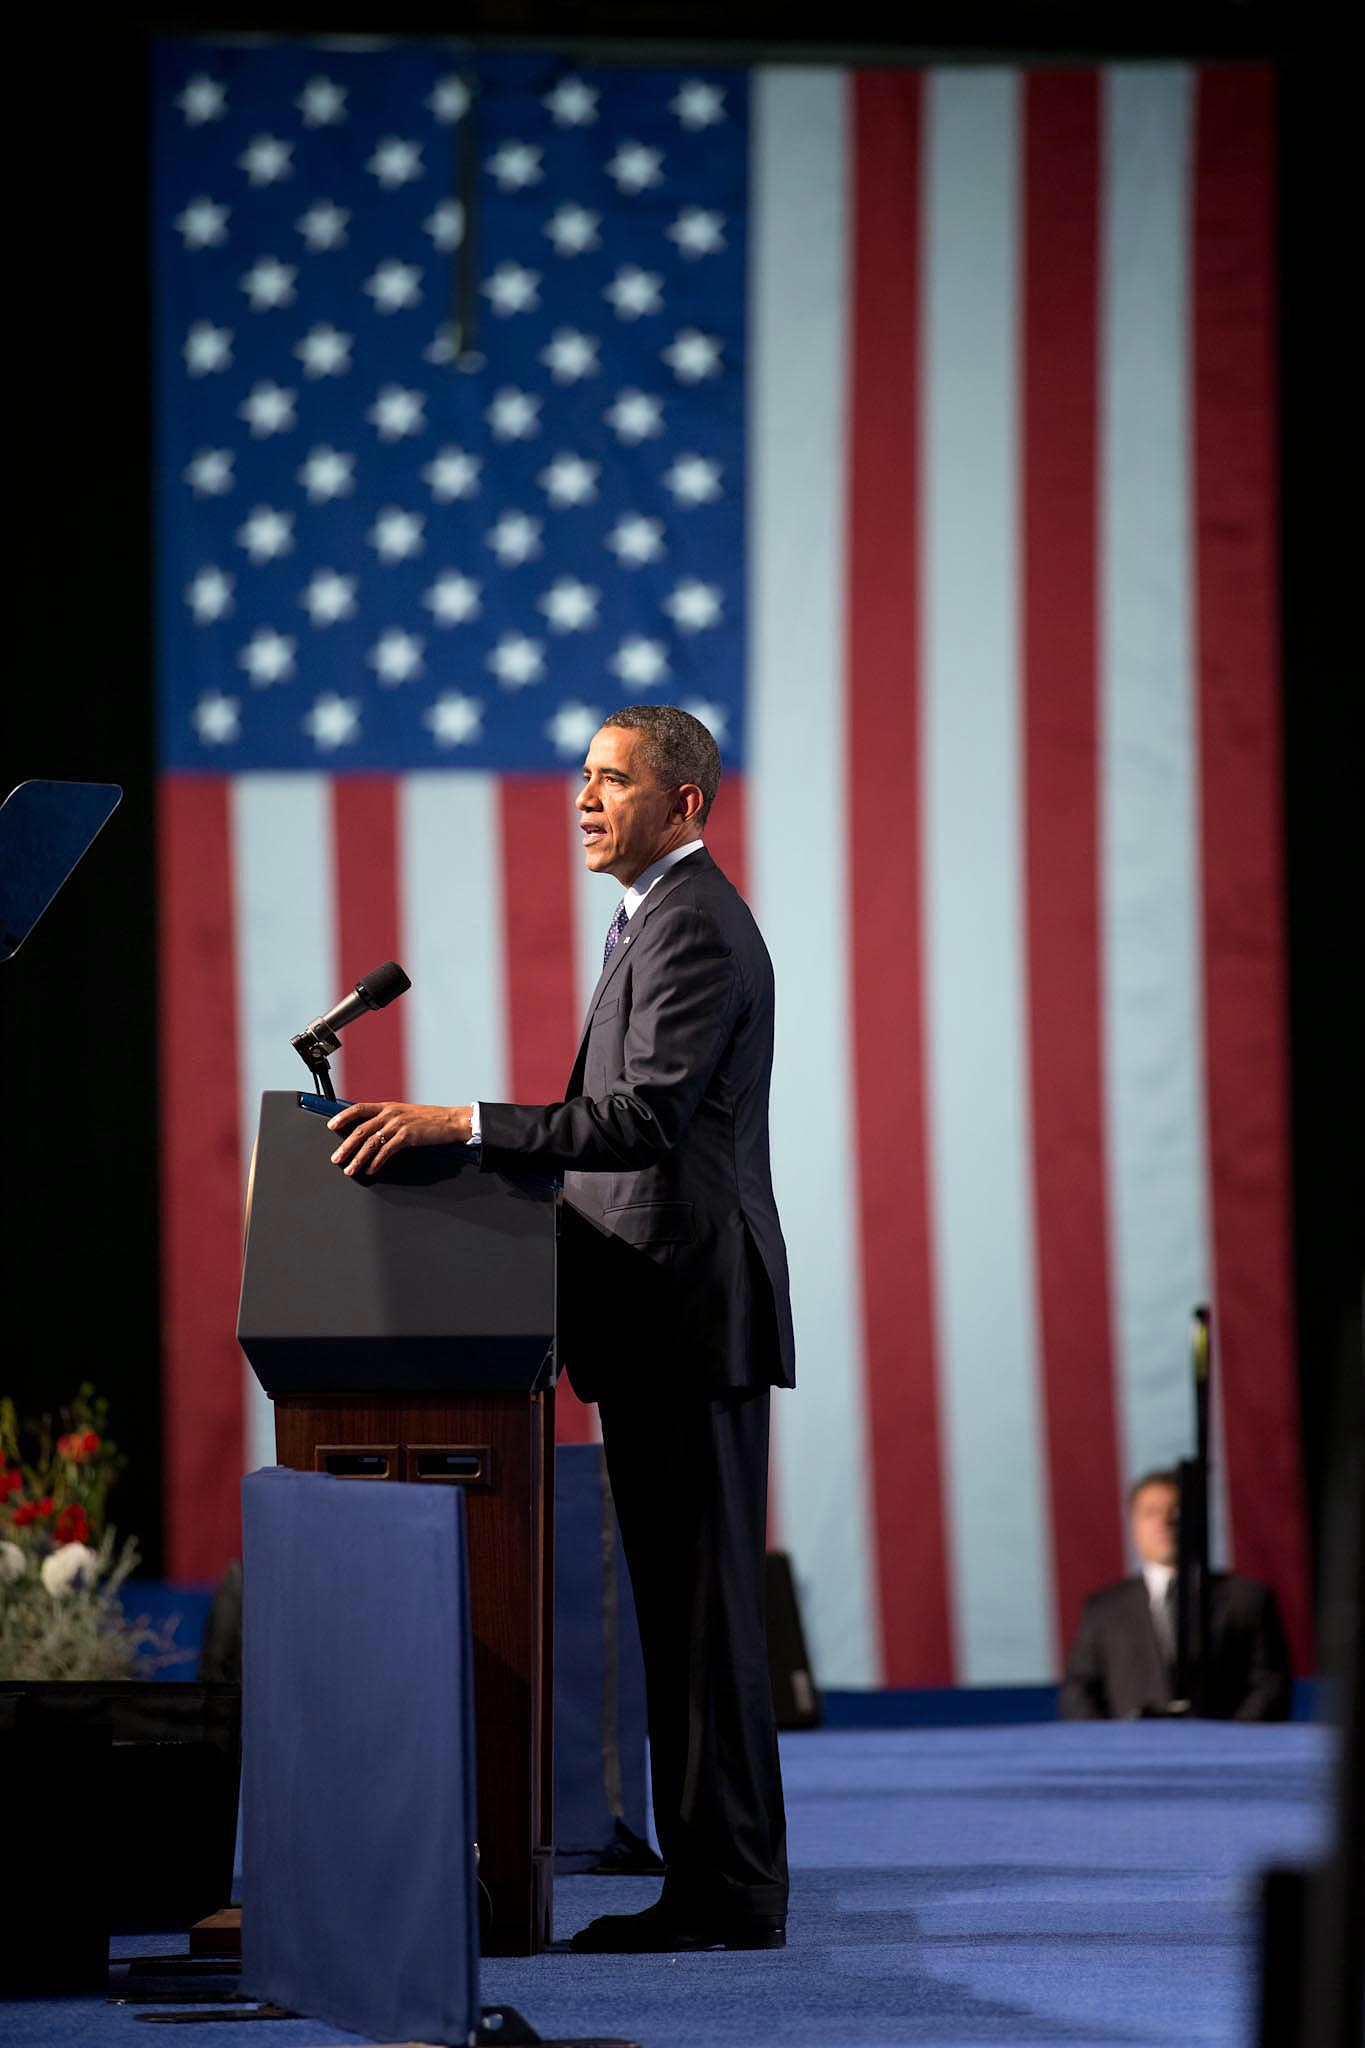 President Barack Obama delivers remarks at the 113th National Convention of the Veterans of Foreign Wars